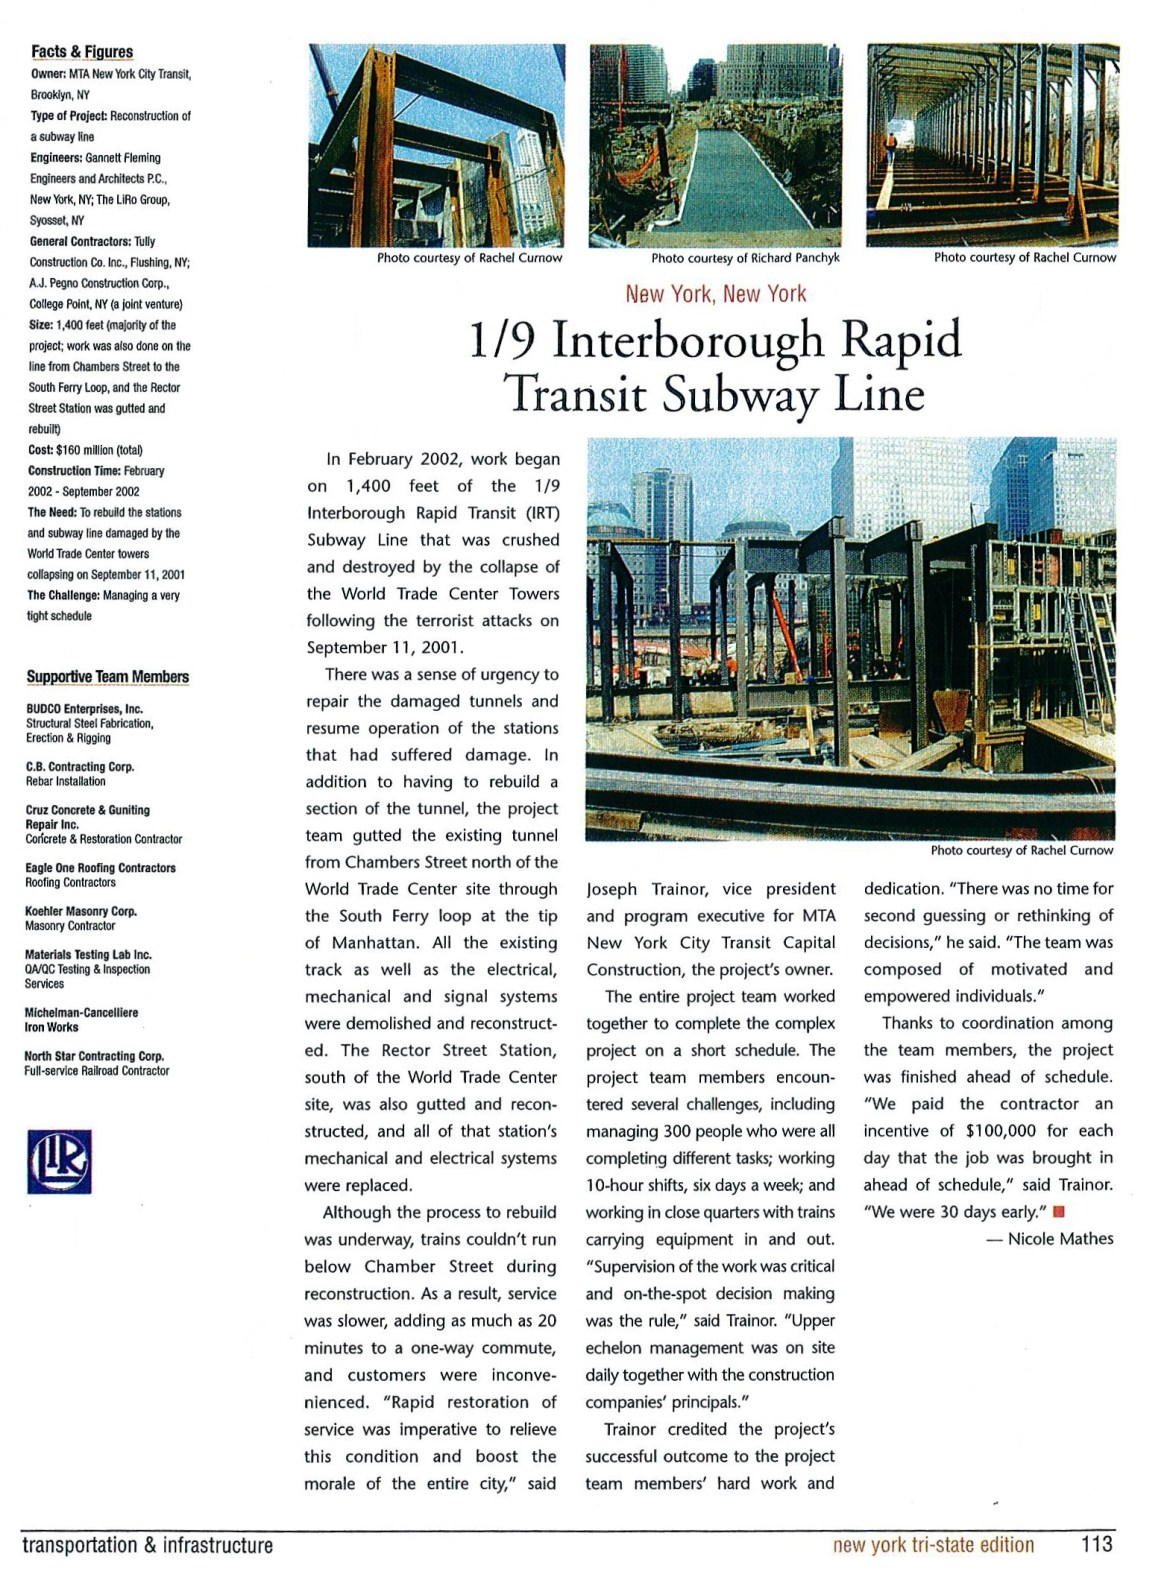 An article about the reconstruction Budco performed of the New York City subway line that was crushed following the terrorist attacks on September 11, 2001. This job was recognized as one of the Top Projects in the New York Tri-State Area.